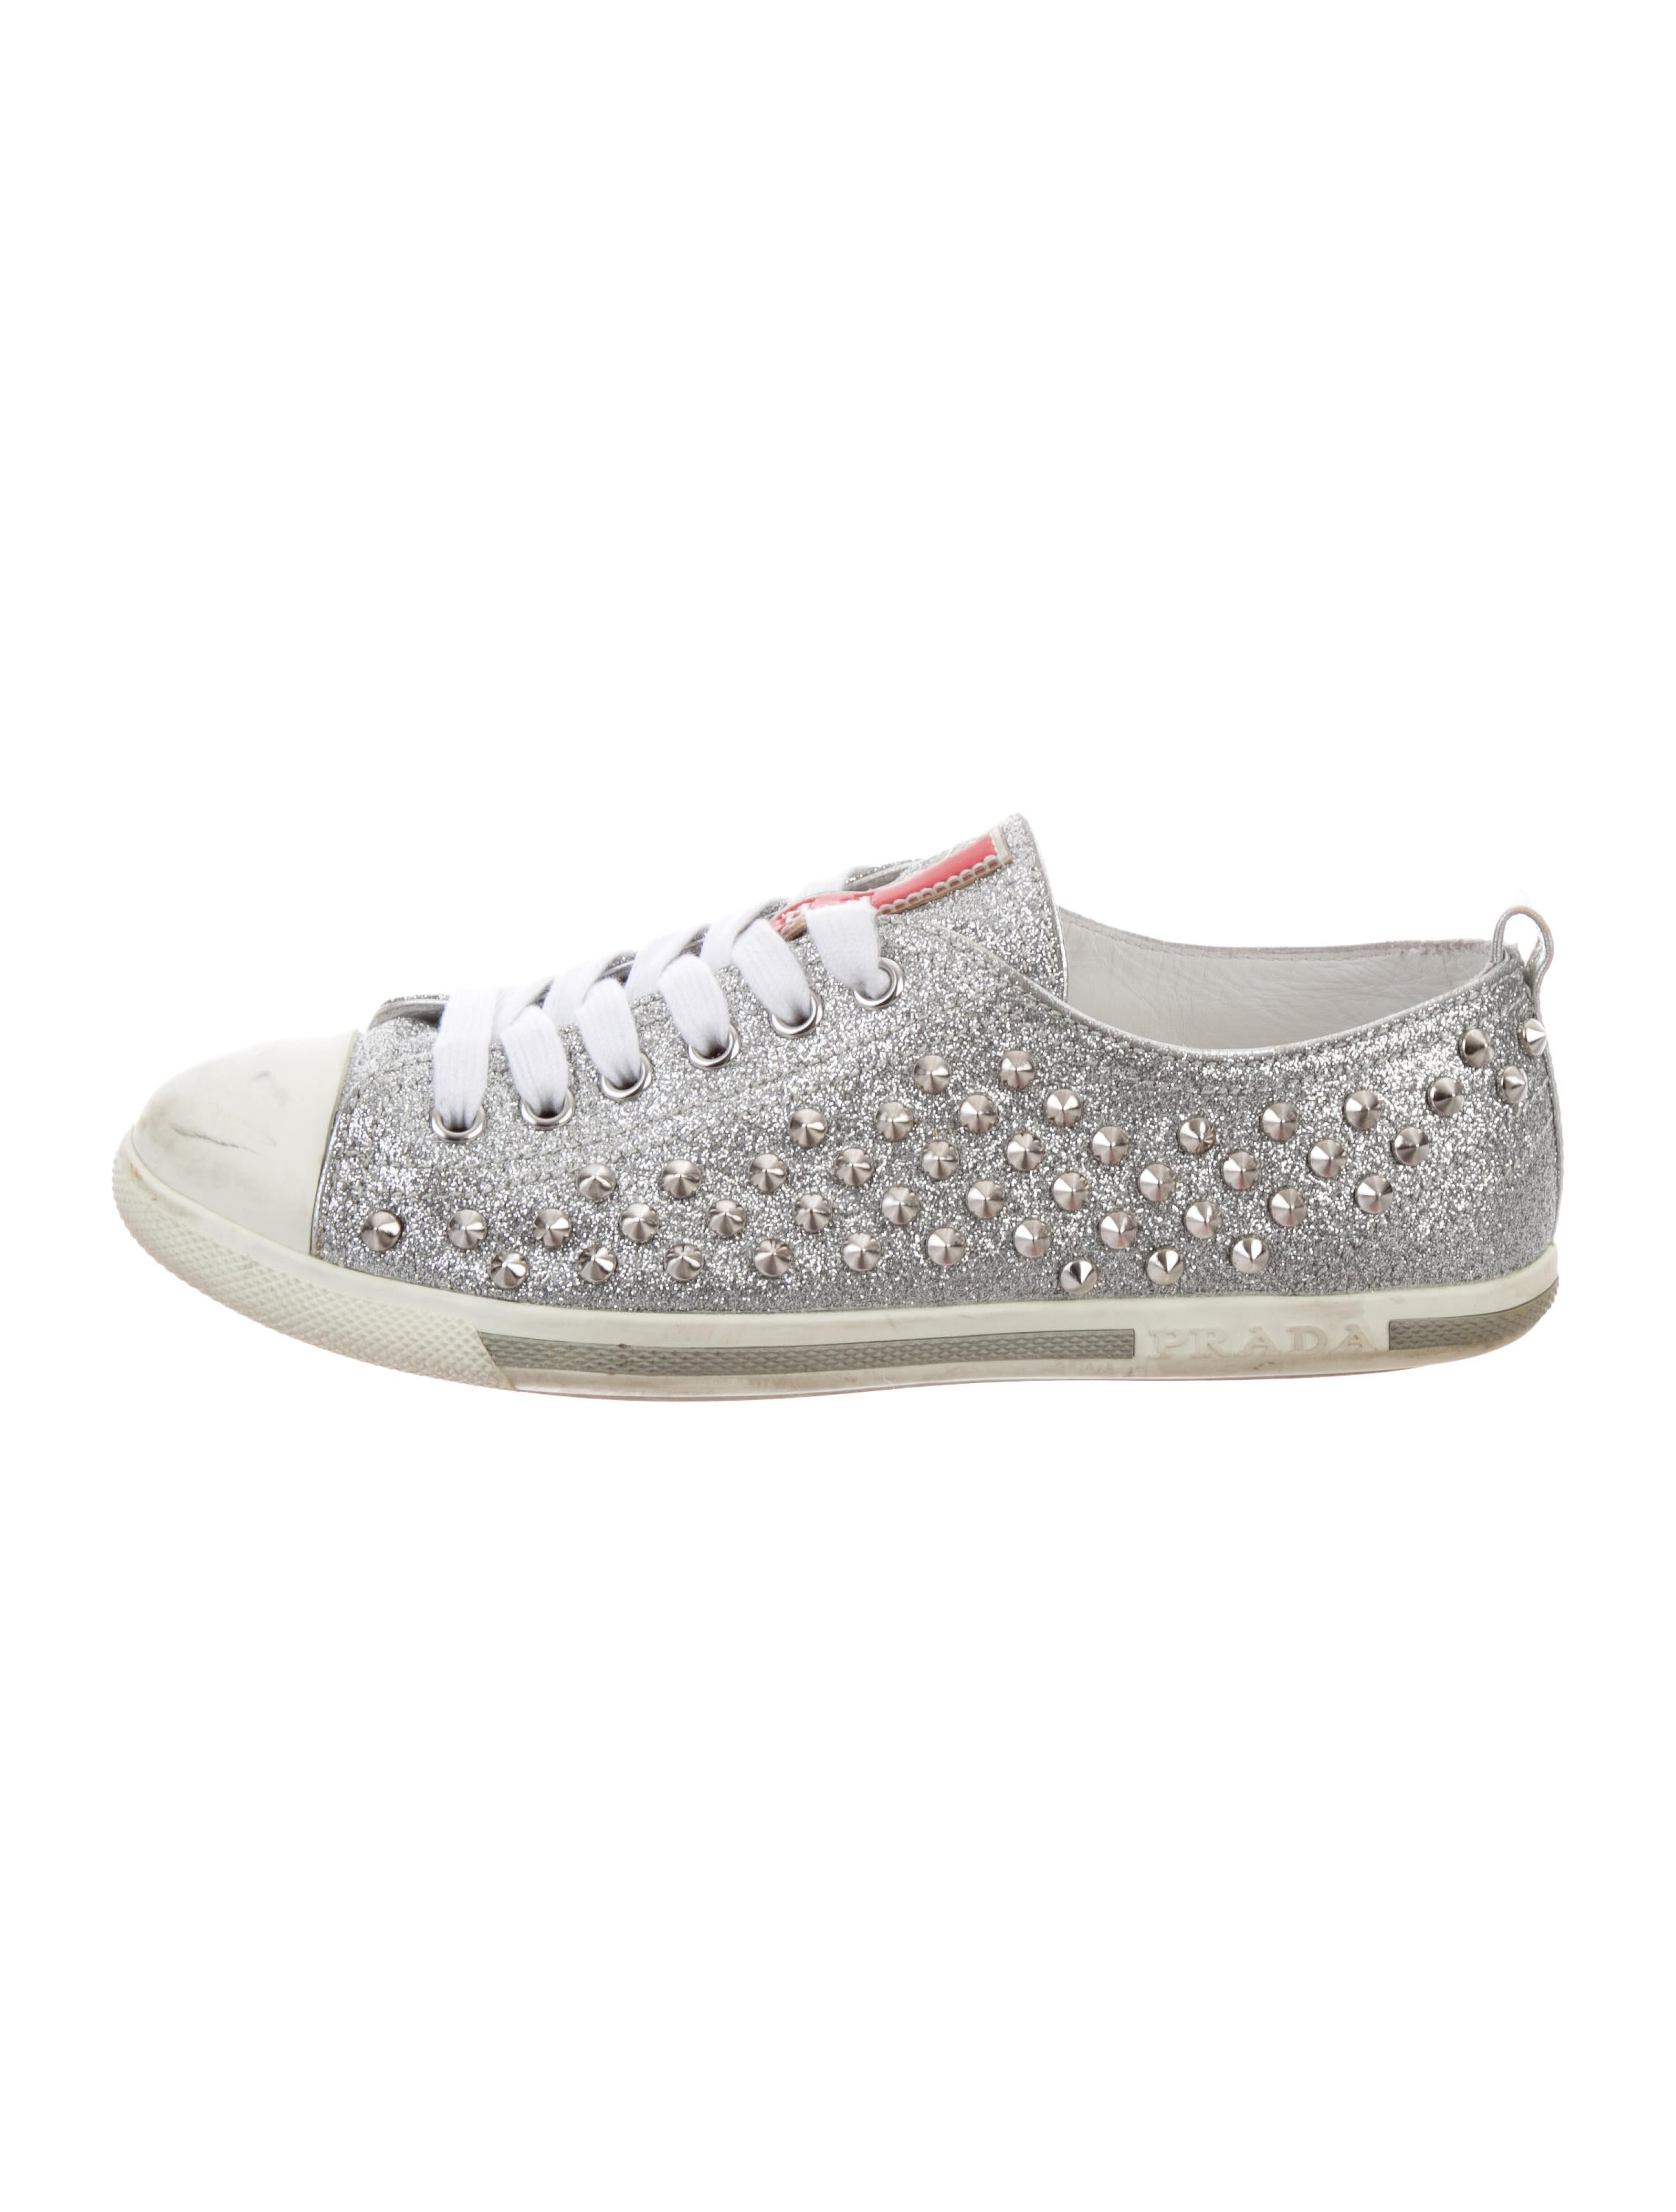 Prada Sport Glitter Spiked Sneakers visit new online supply 100% original cheap online P2pg7